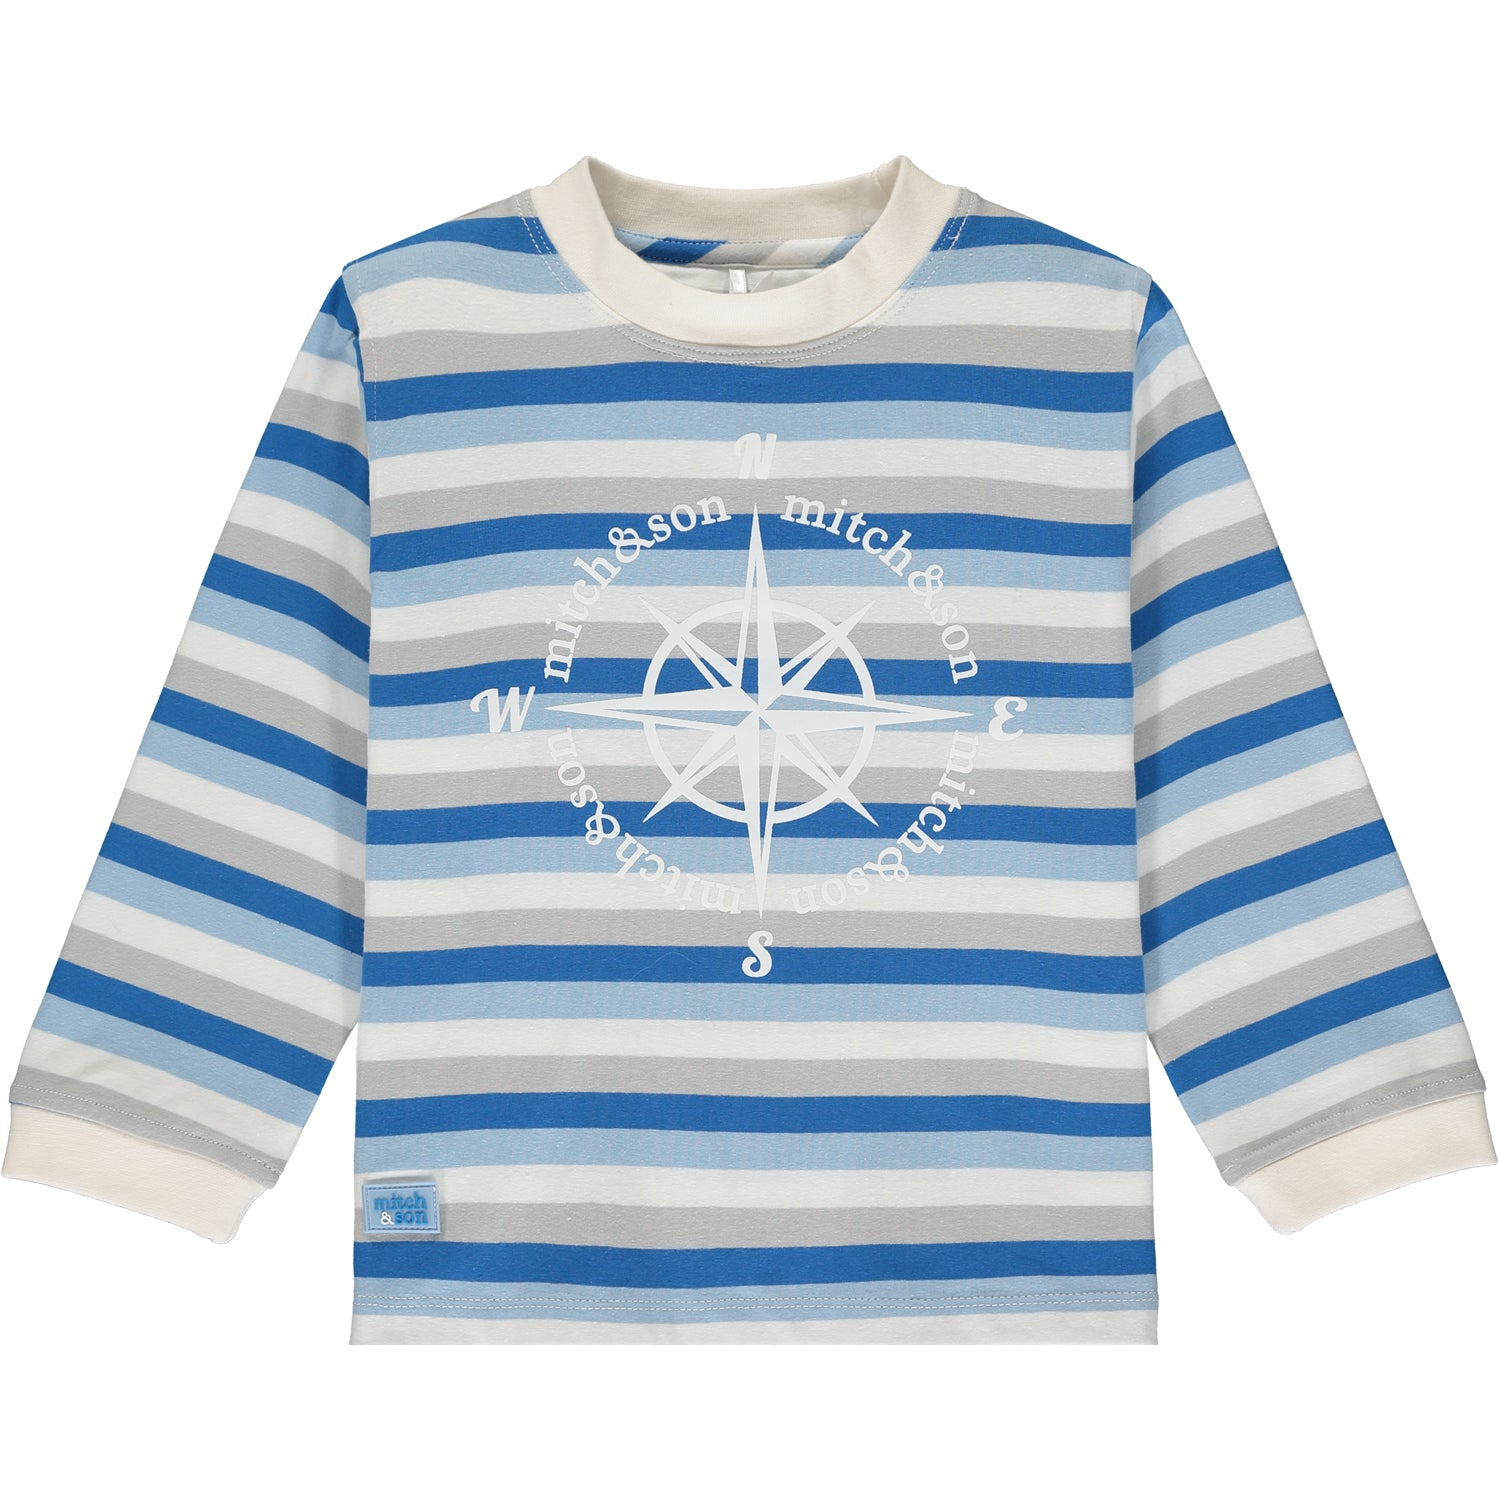 Mitch and Son Stripe compass top - The Mango Tree